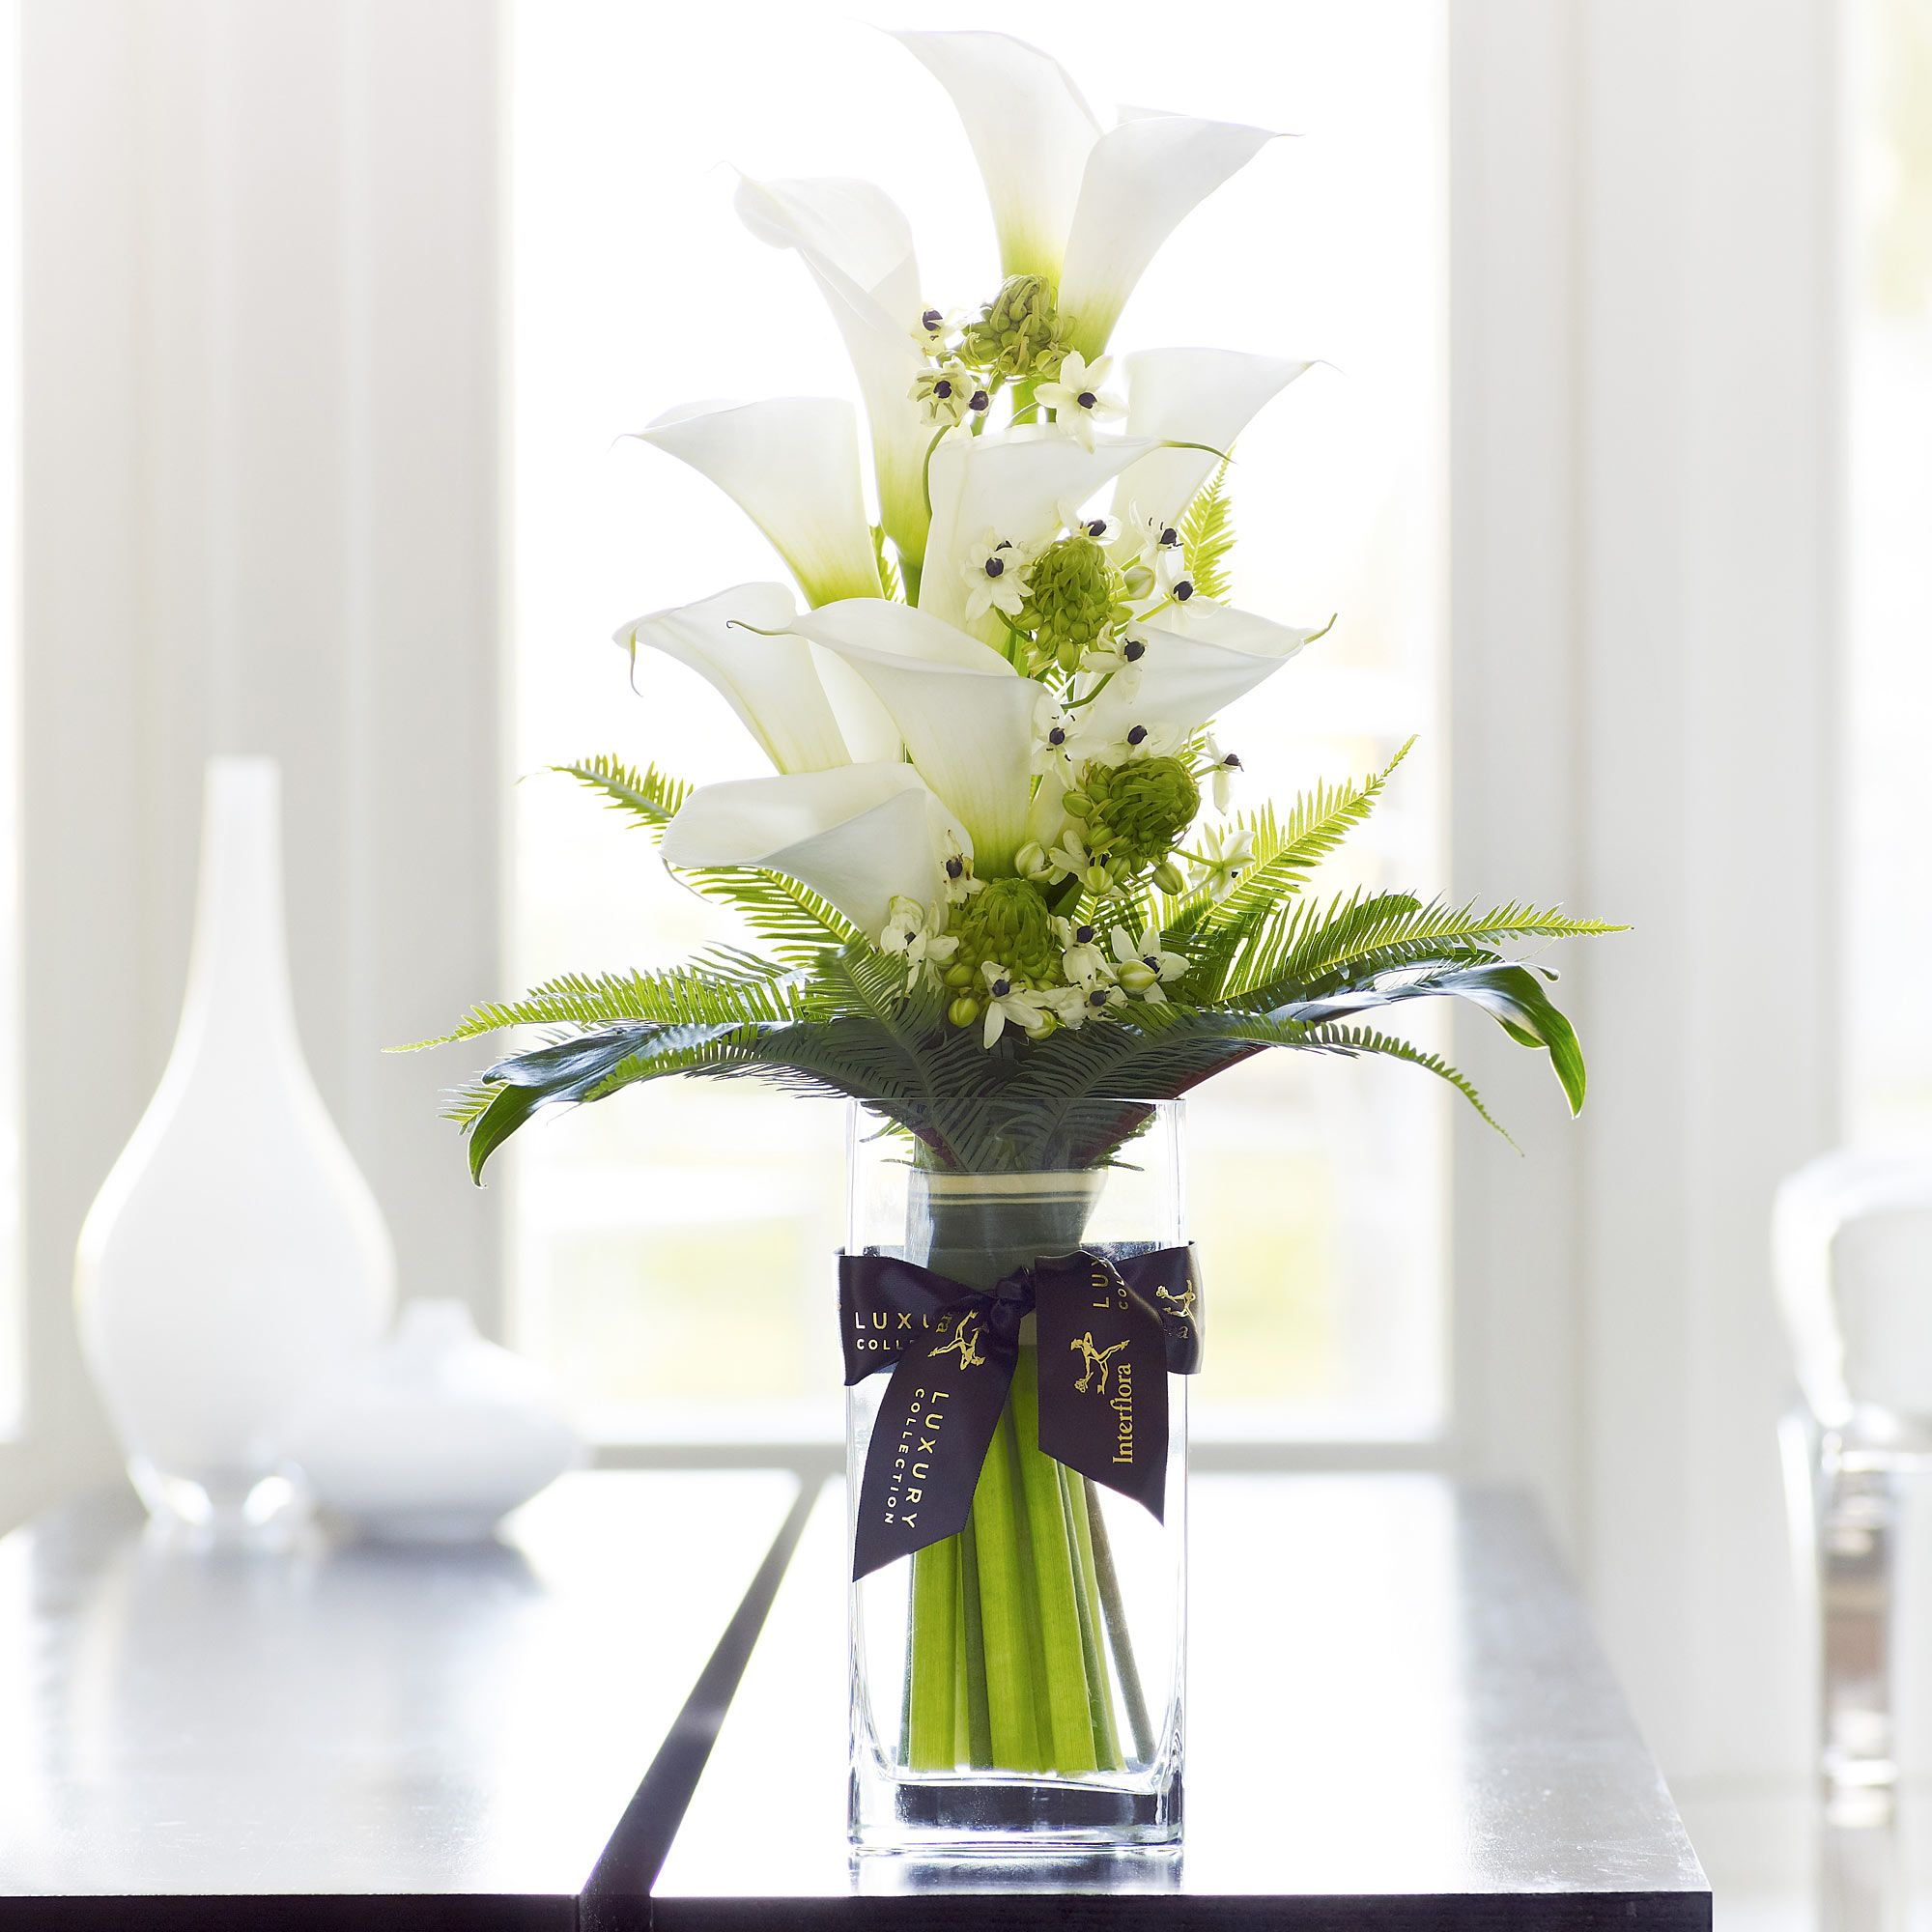 This luxury calla lily vase is an elegant arrangement for